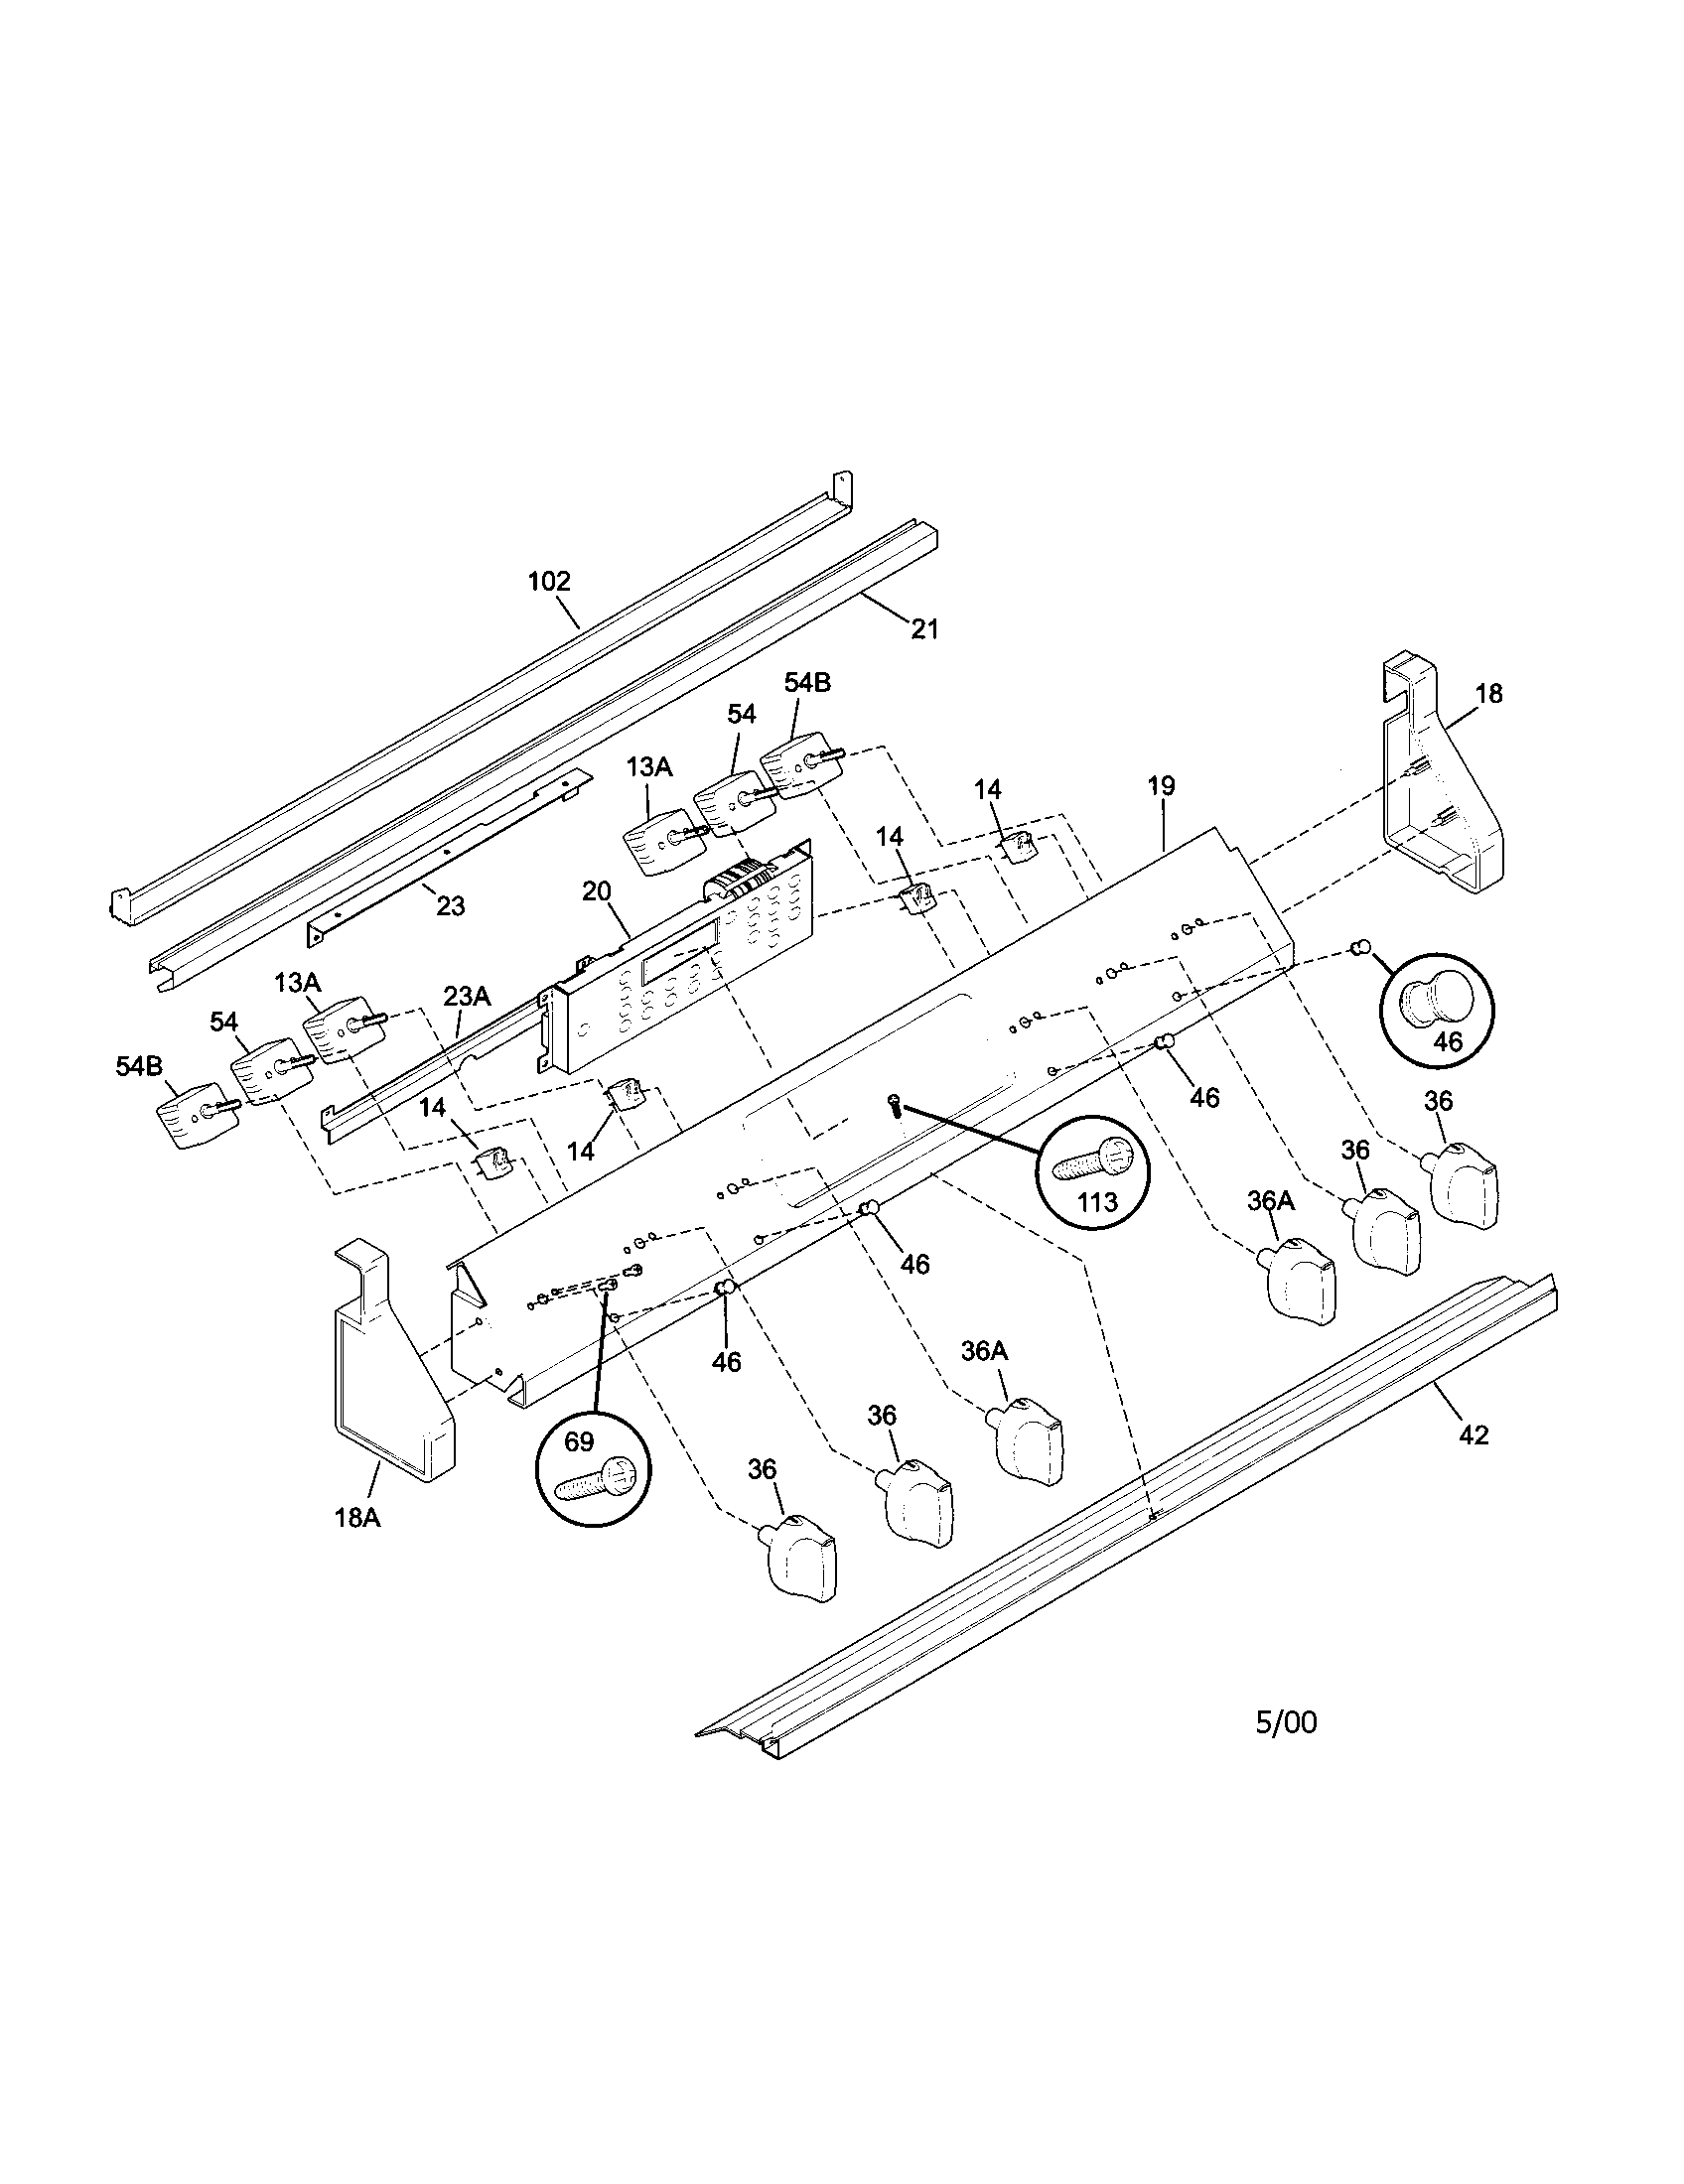 79046803992 elite electric slide-in range backguard parts diagram